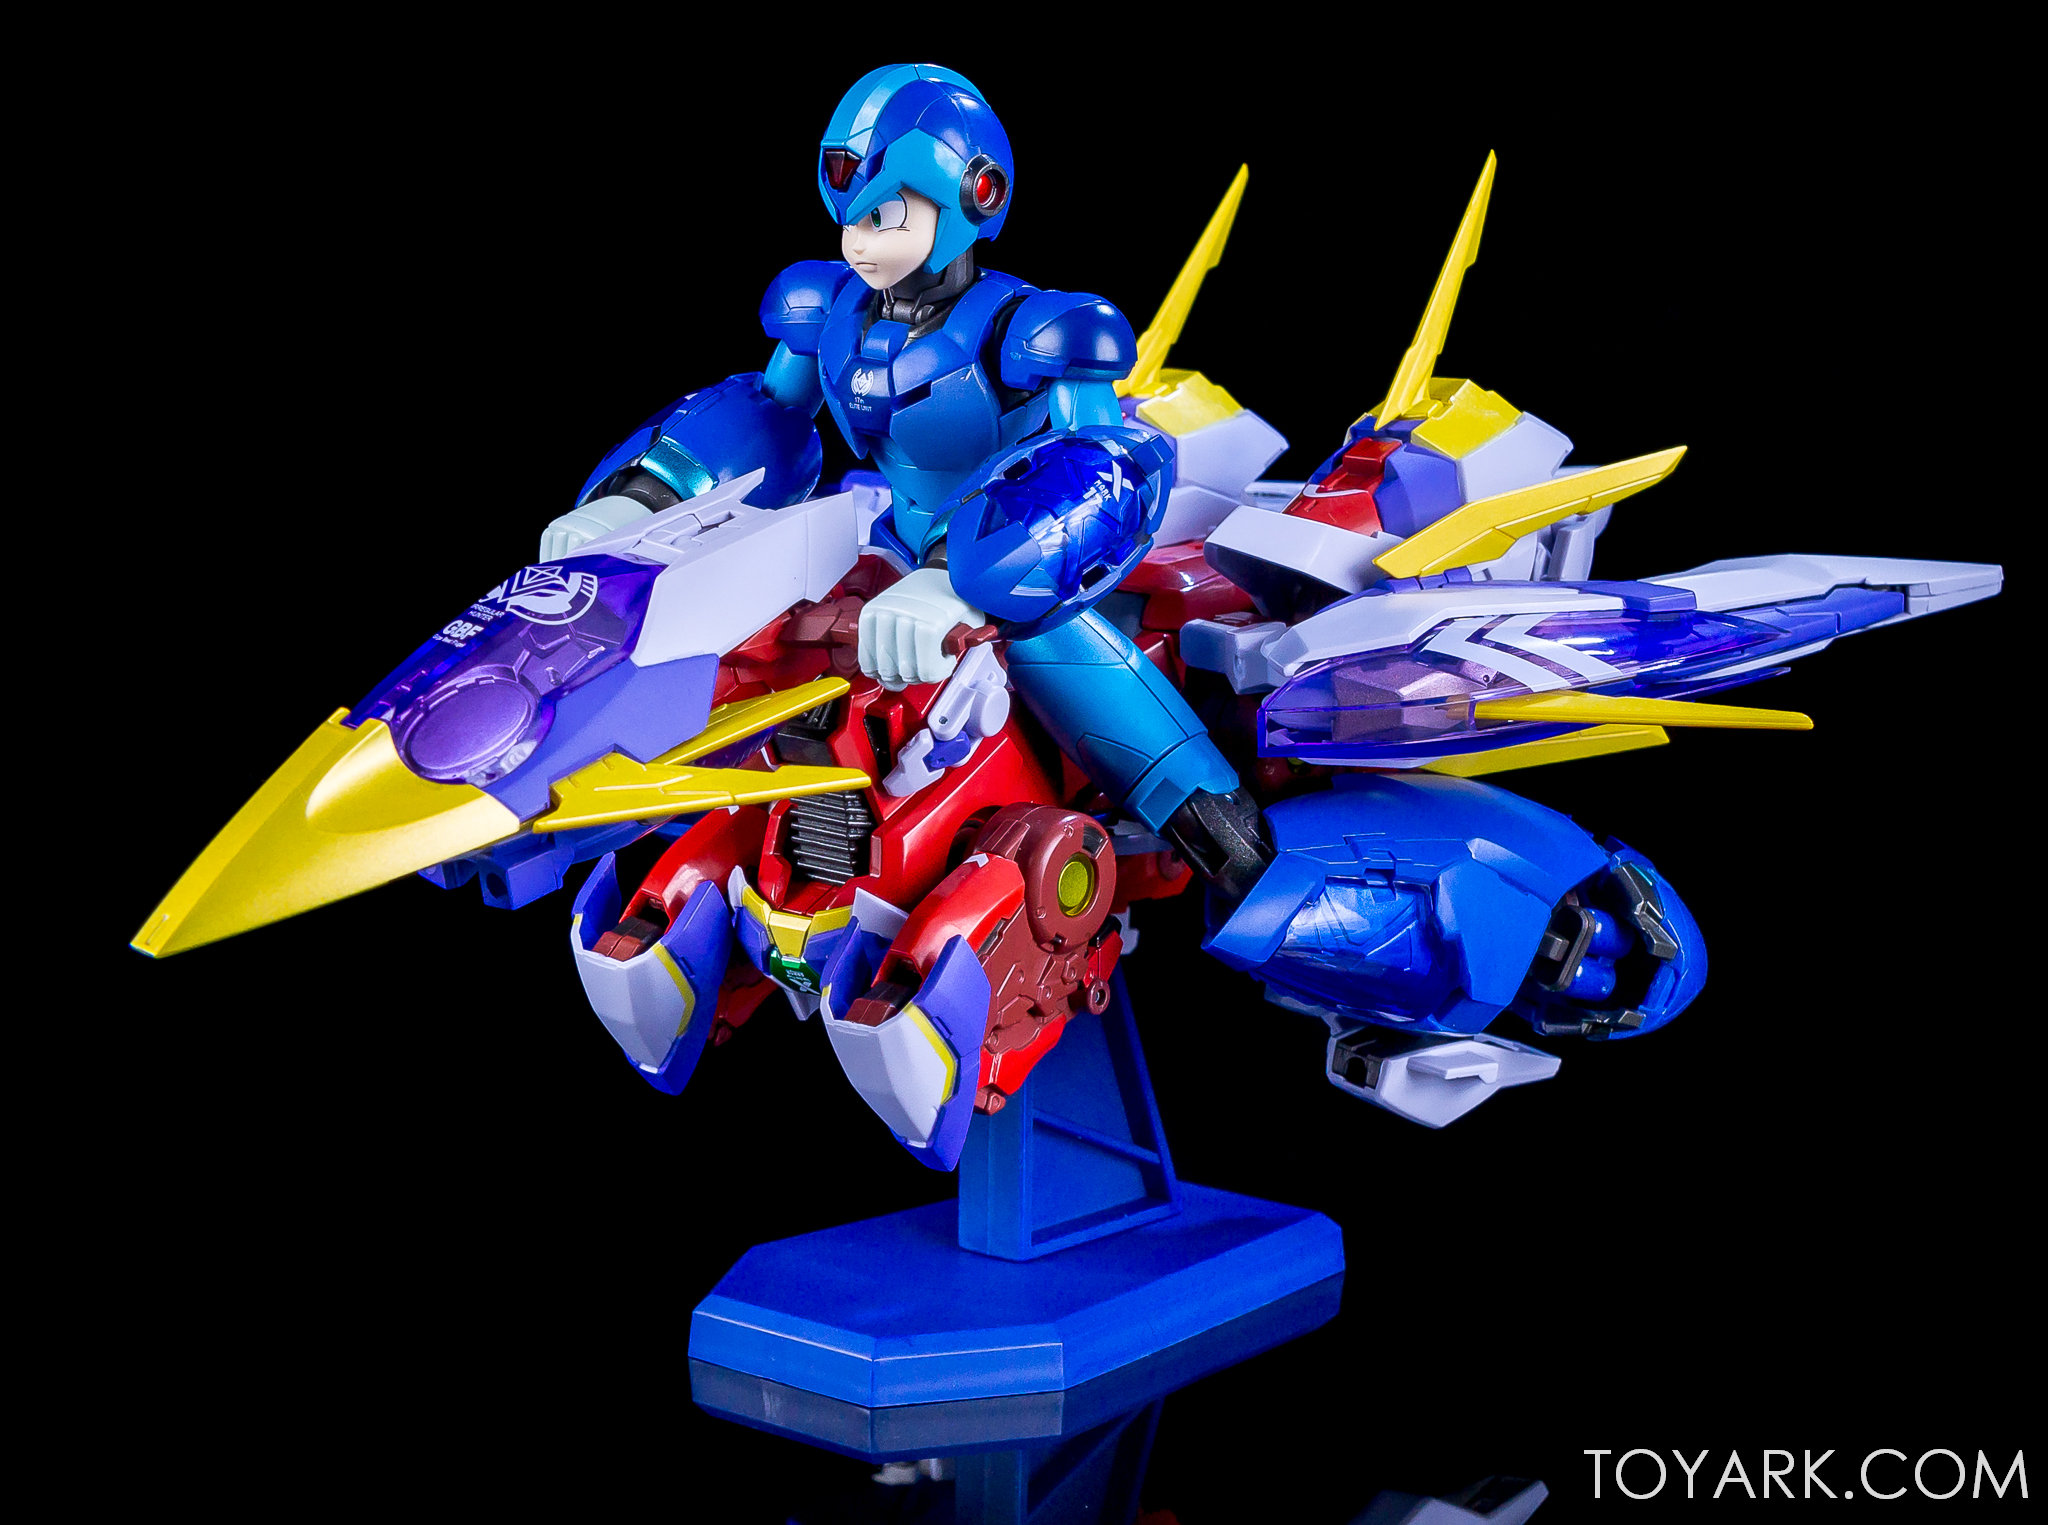 http://news.toyark.com/wp-content/uploads/sites/4/2018/01/Mega-Man-X-Giga-Armor-00033.jpg